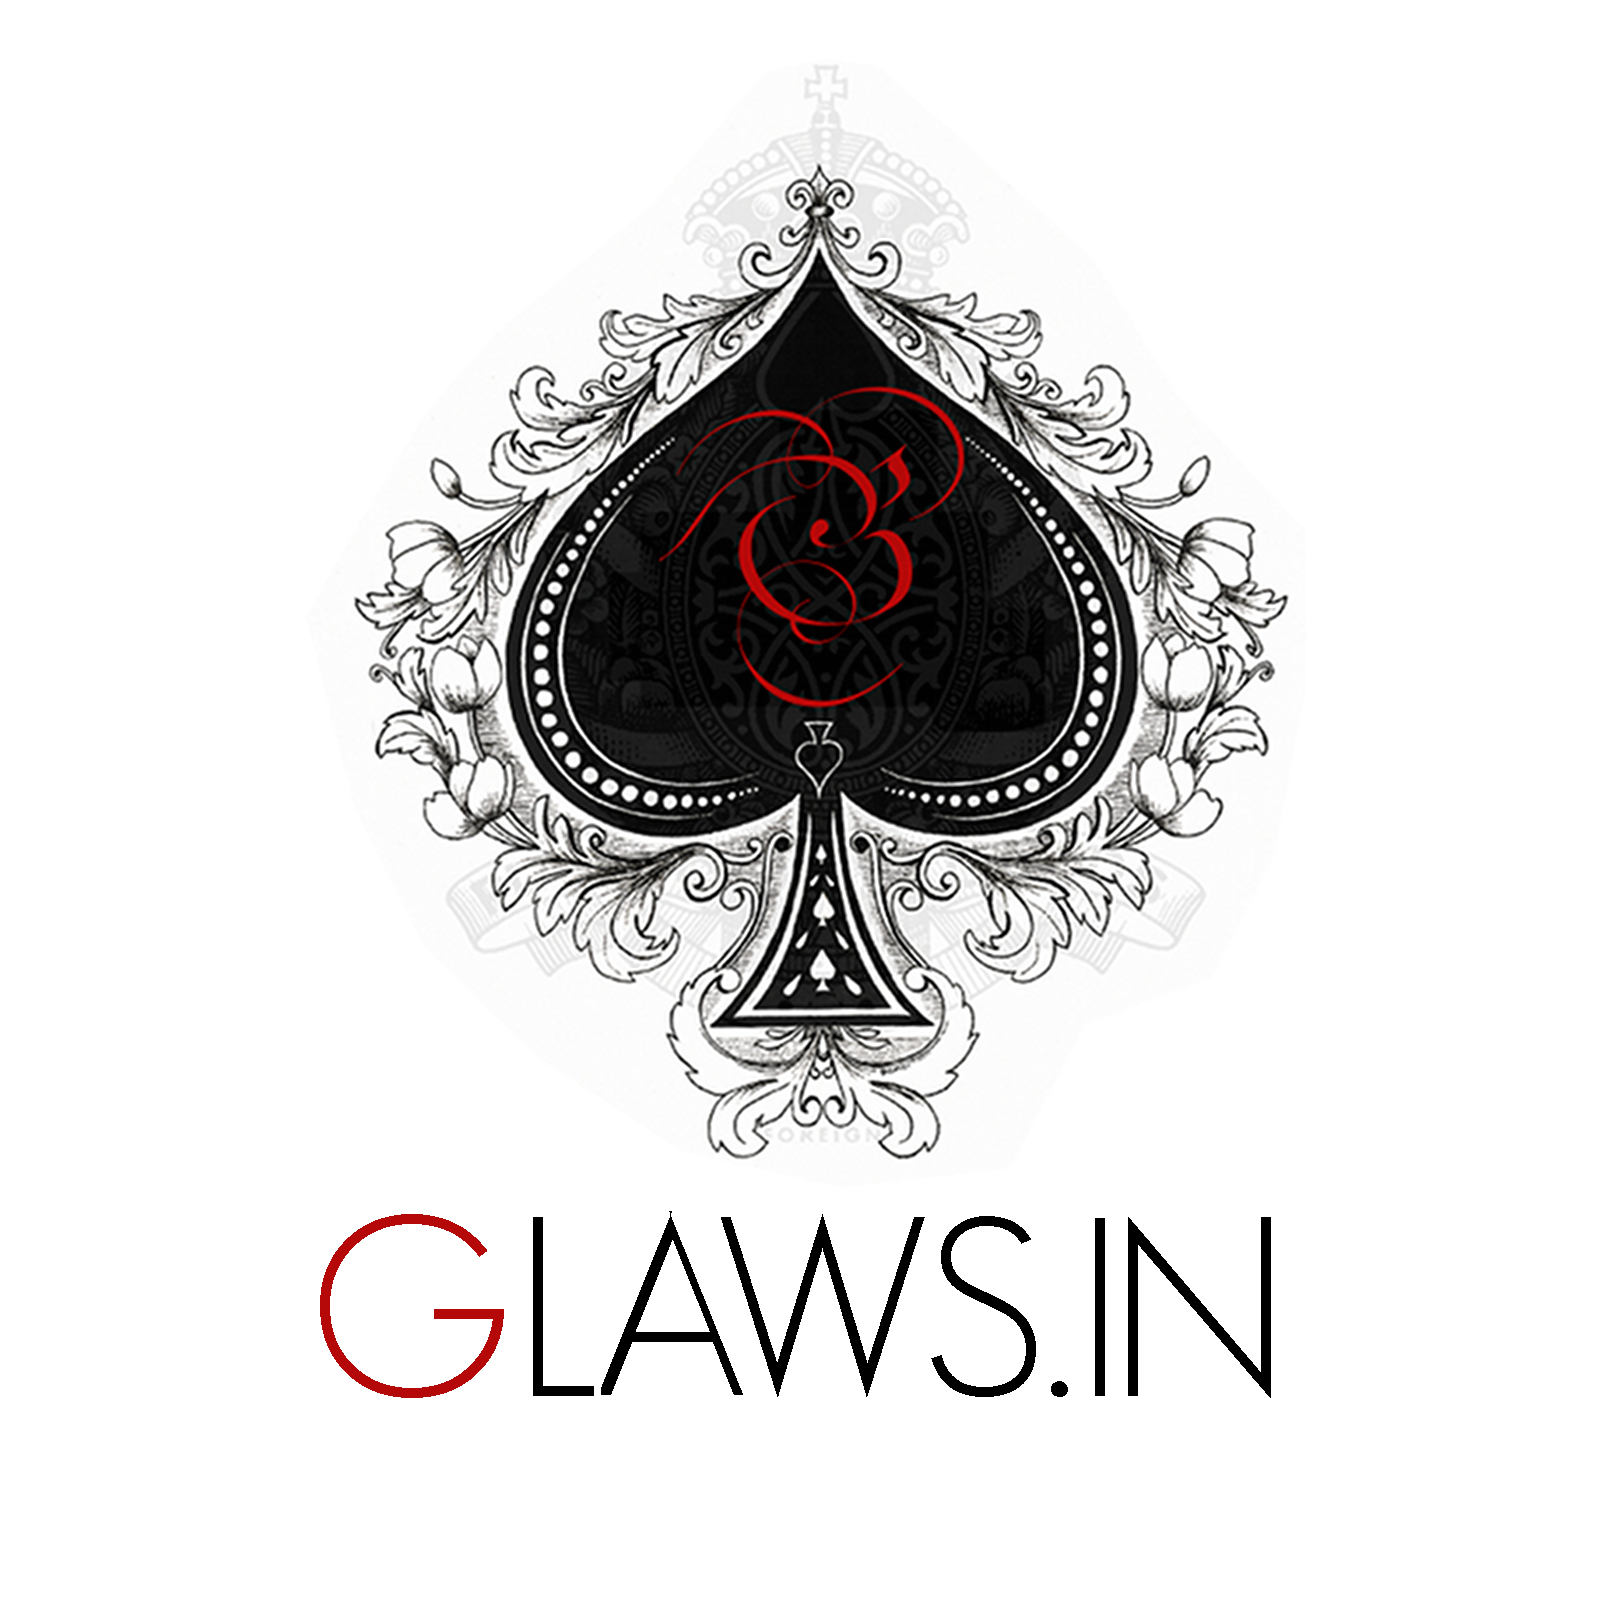 - Founded in 2010 by Jay Sayta and Ramanuj Mukherjee, http://glaws.in/ is India's first and only website monitoring developments in gambling, betting and lottery laws. It is referred to by all stakeholders including academicians, journalists and gaming executives for tracking latest developments in the Indian gaming, betting and lottery industry. http://glaws.in/ has been extensively quoted by Indian and International publications and the content from glaws.in is used as a resource by large number of media websites.